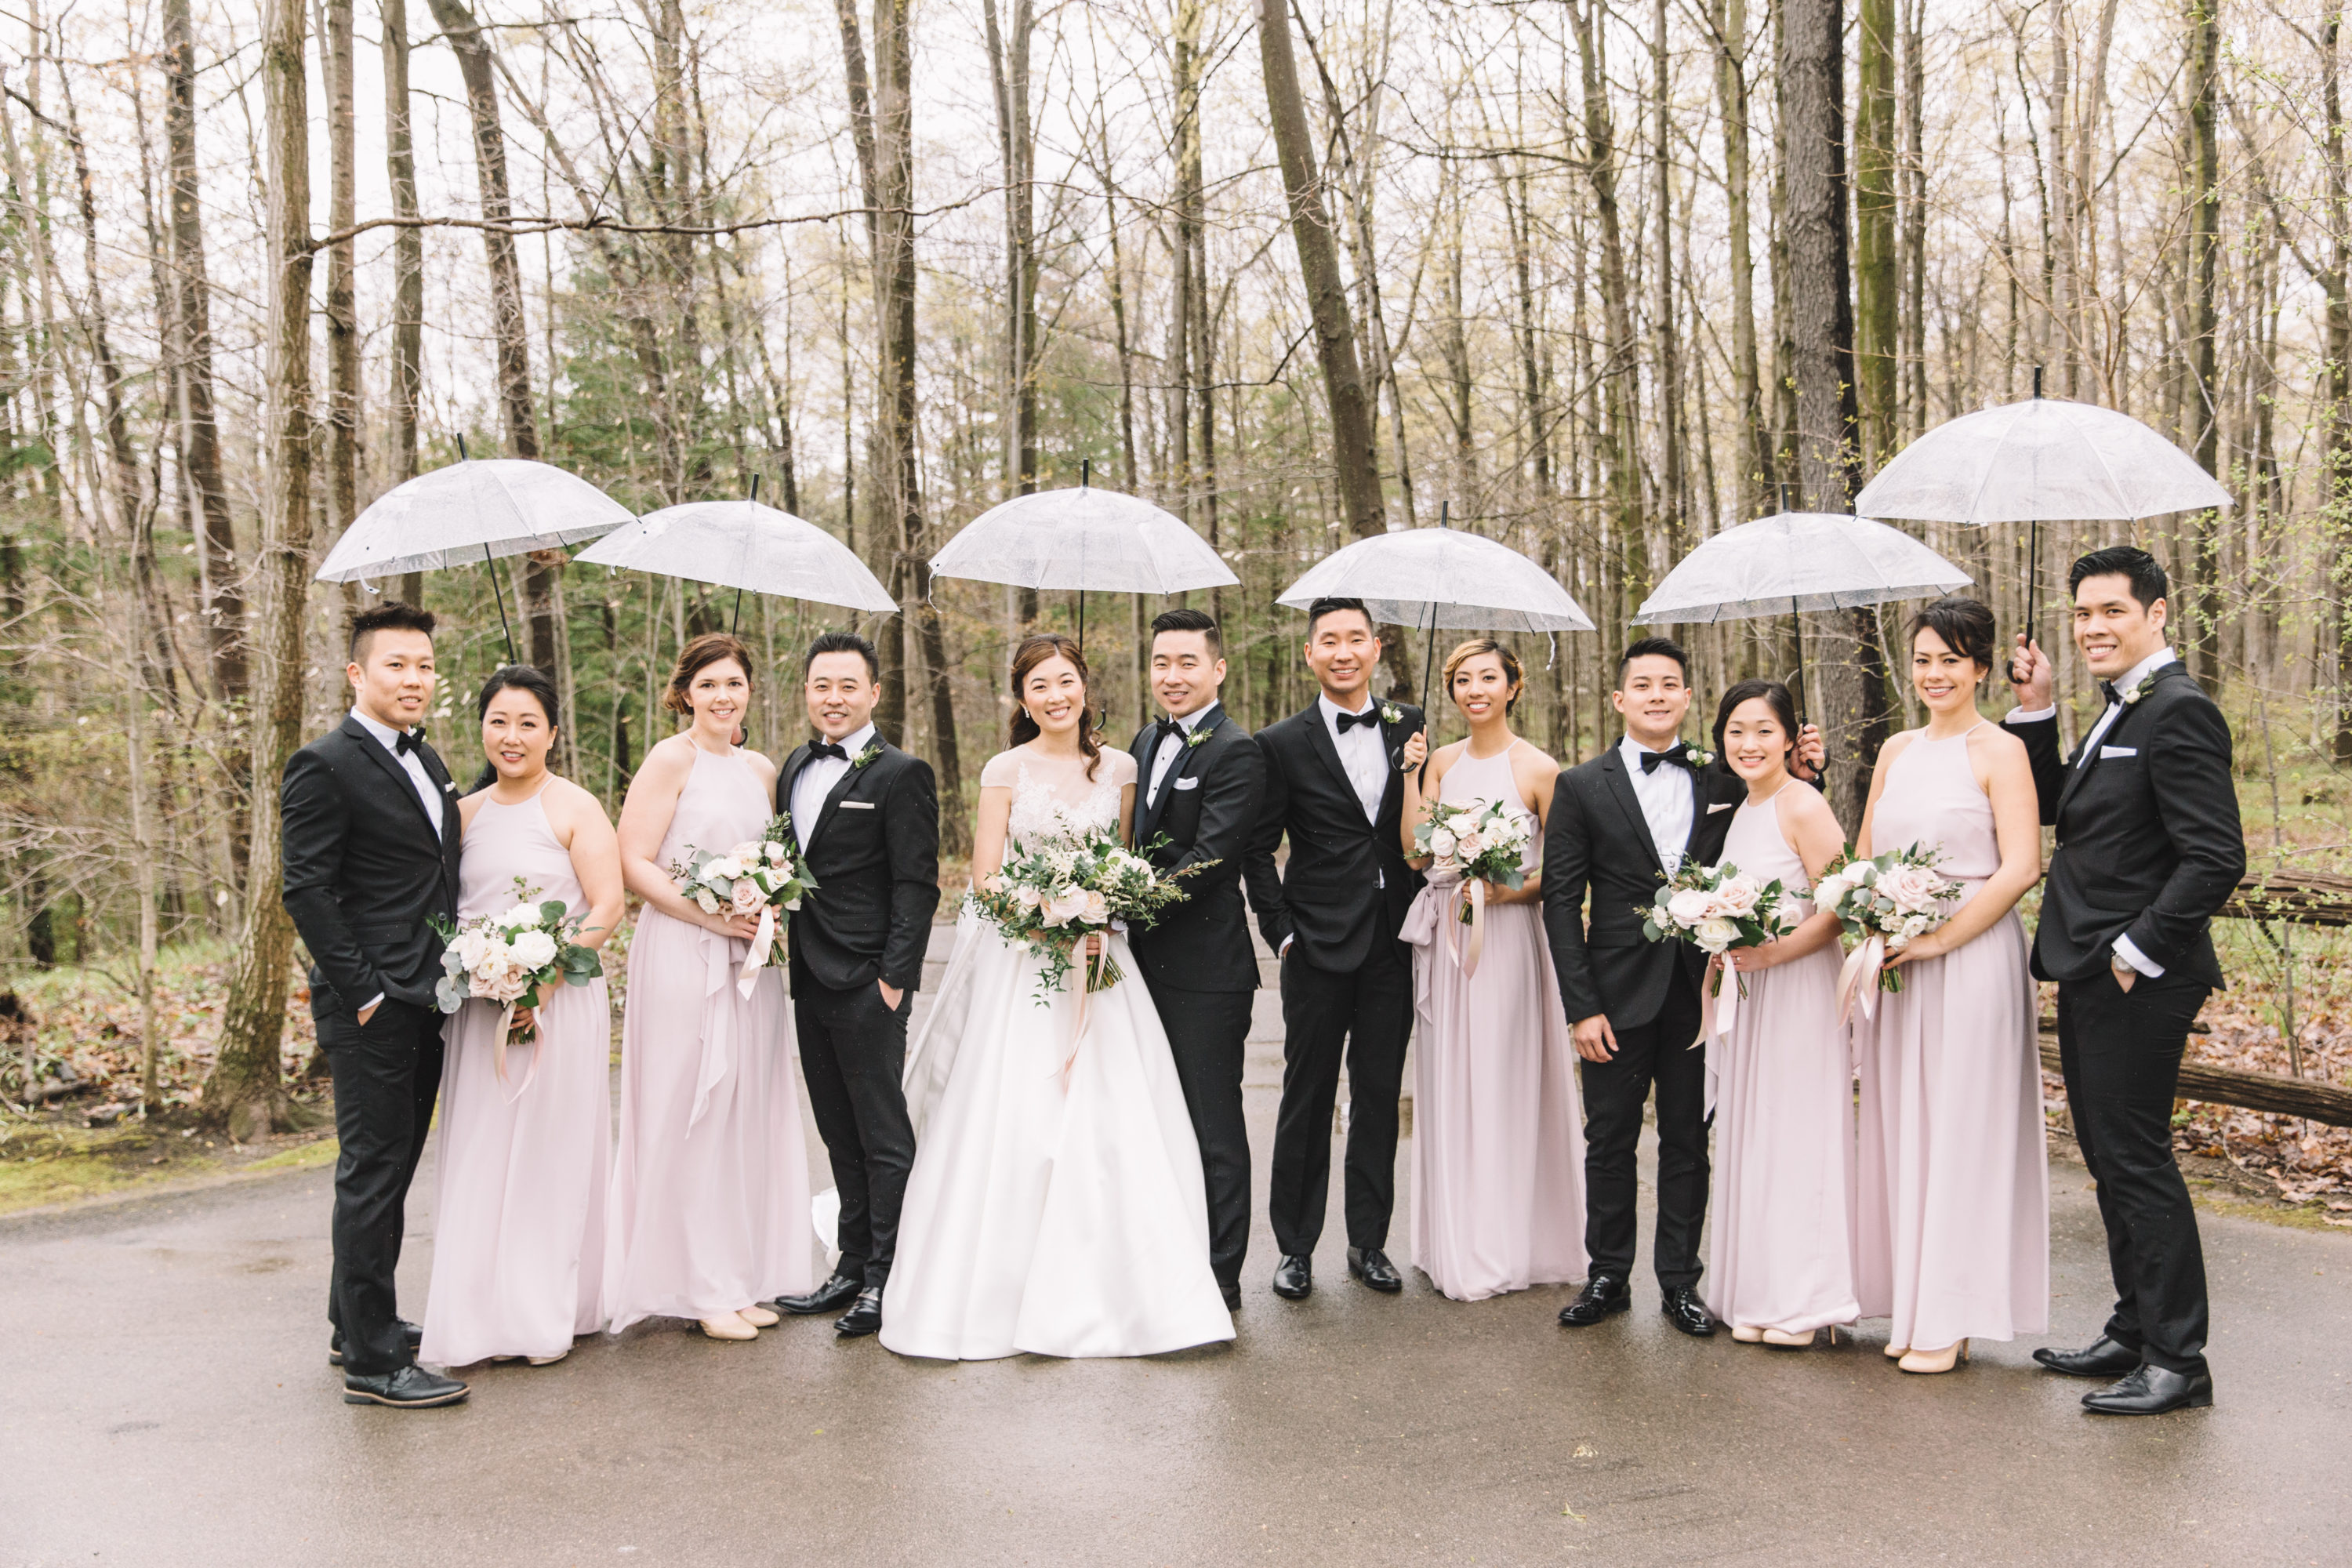 Rainy bridal portrait at Whistle Bear